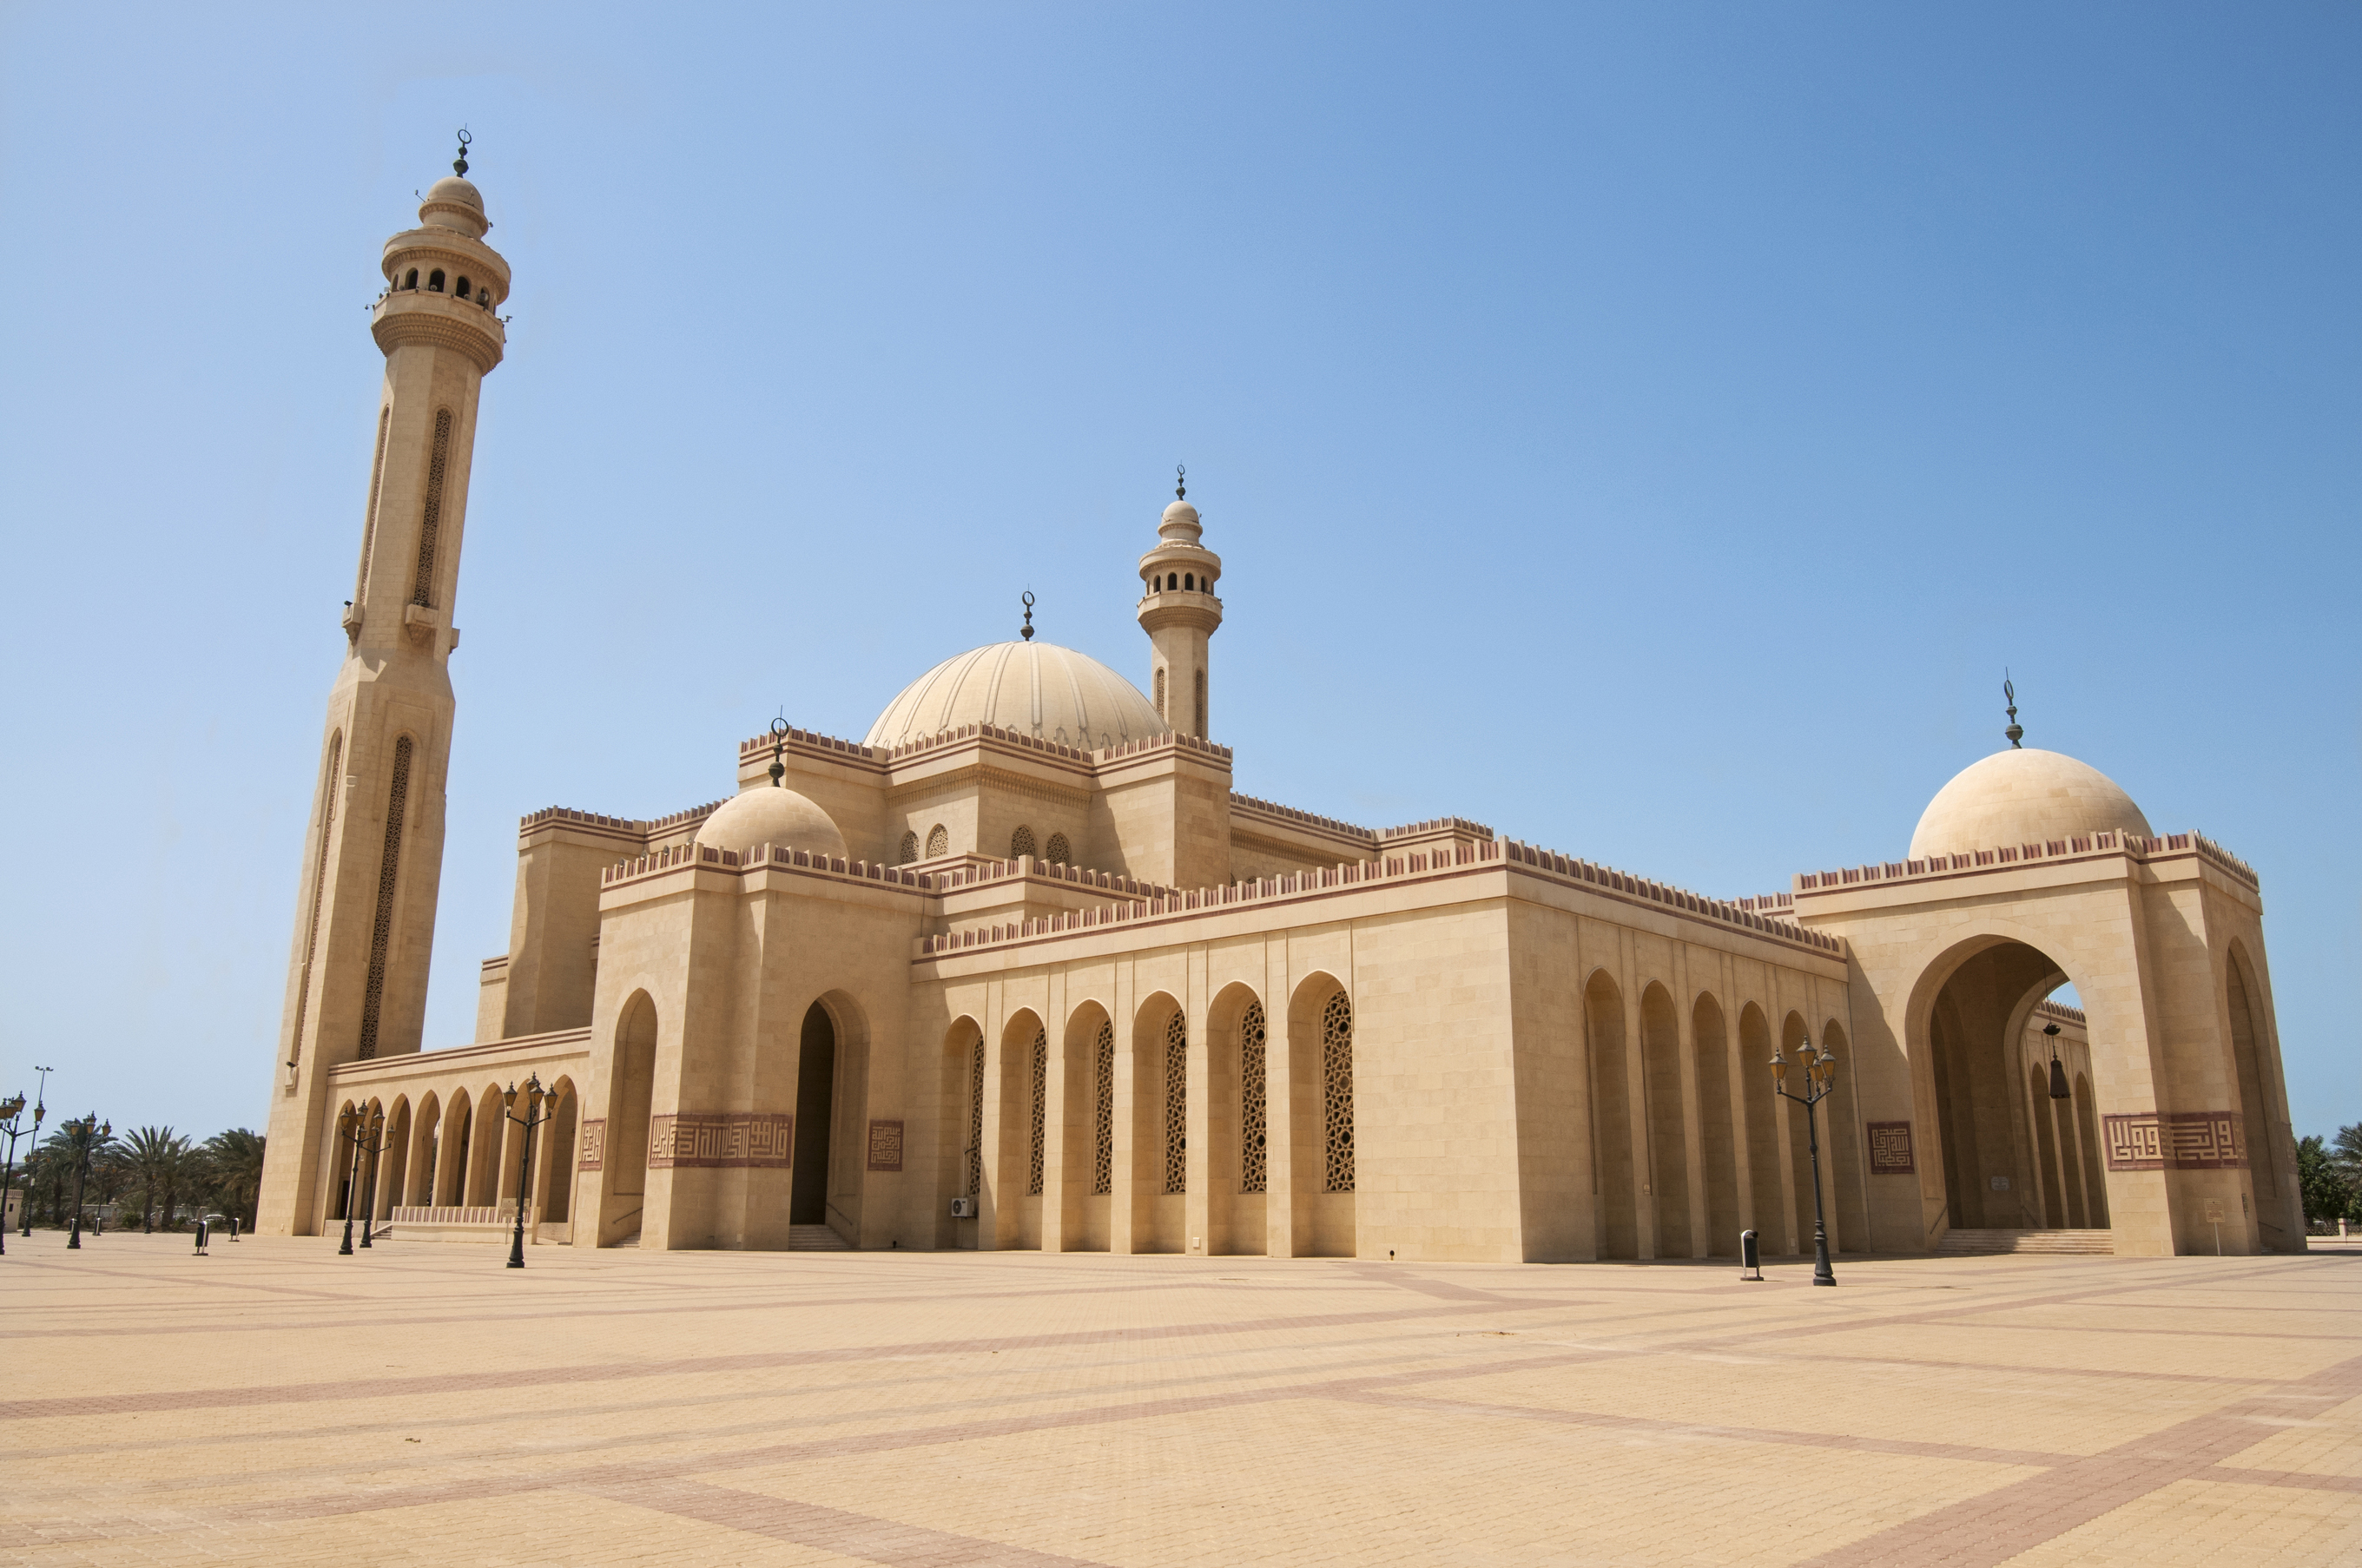 The Itinerary - 24 Hours in Bahrain